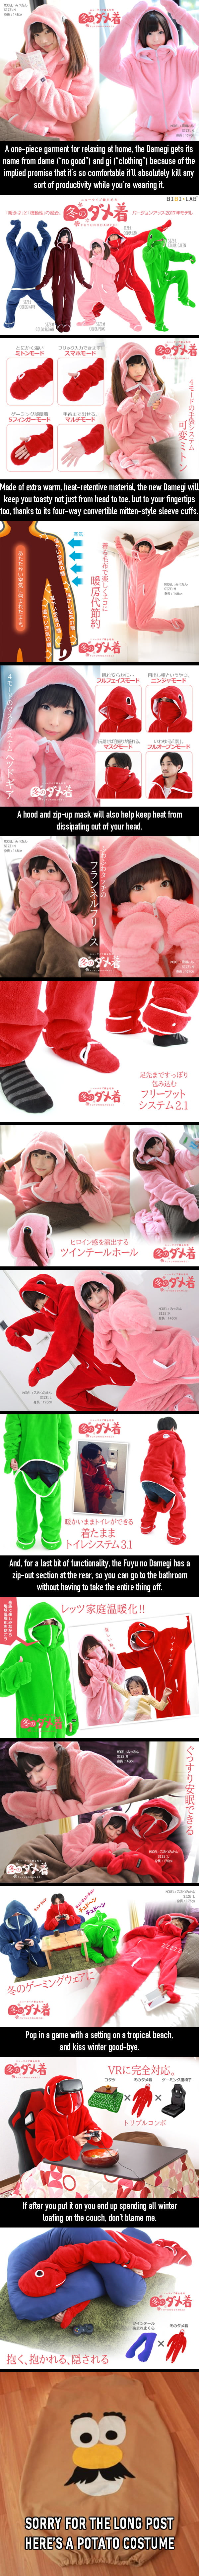 Japan's Crazy-Comfortable Pajama Jumpsuits Will Ruin Your Productivity In Winter